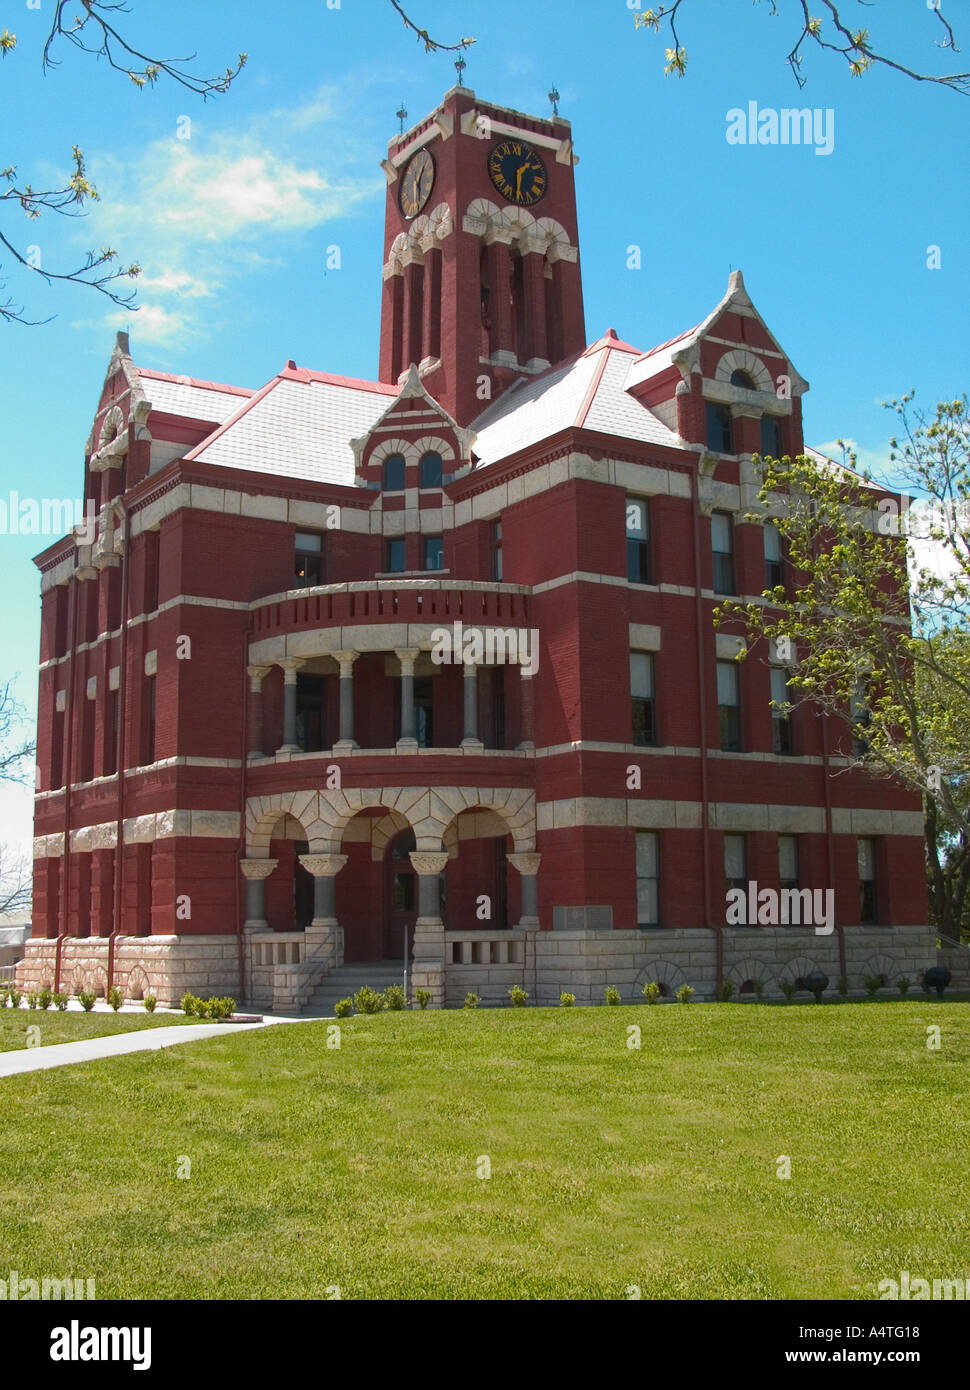 Romanesque Octagonal Lee County Courthouse Giddings Texas - Stock Image